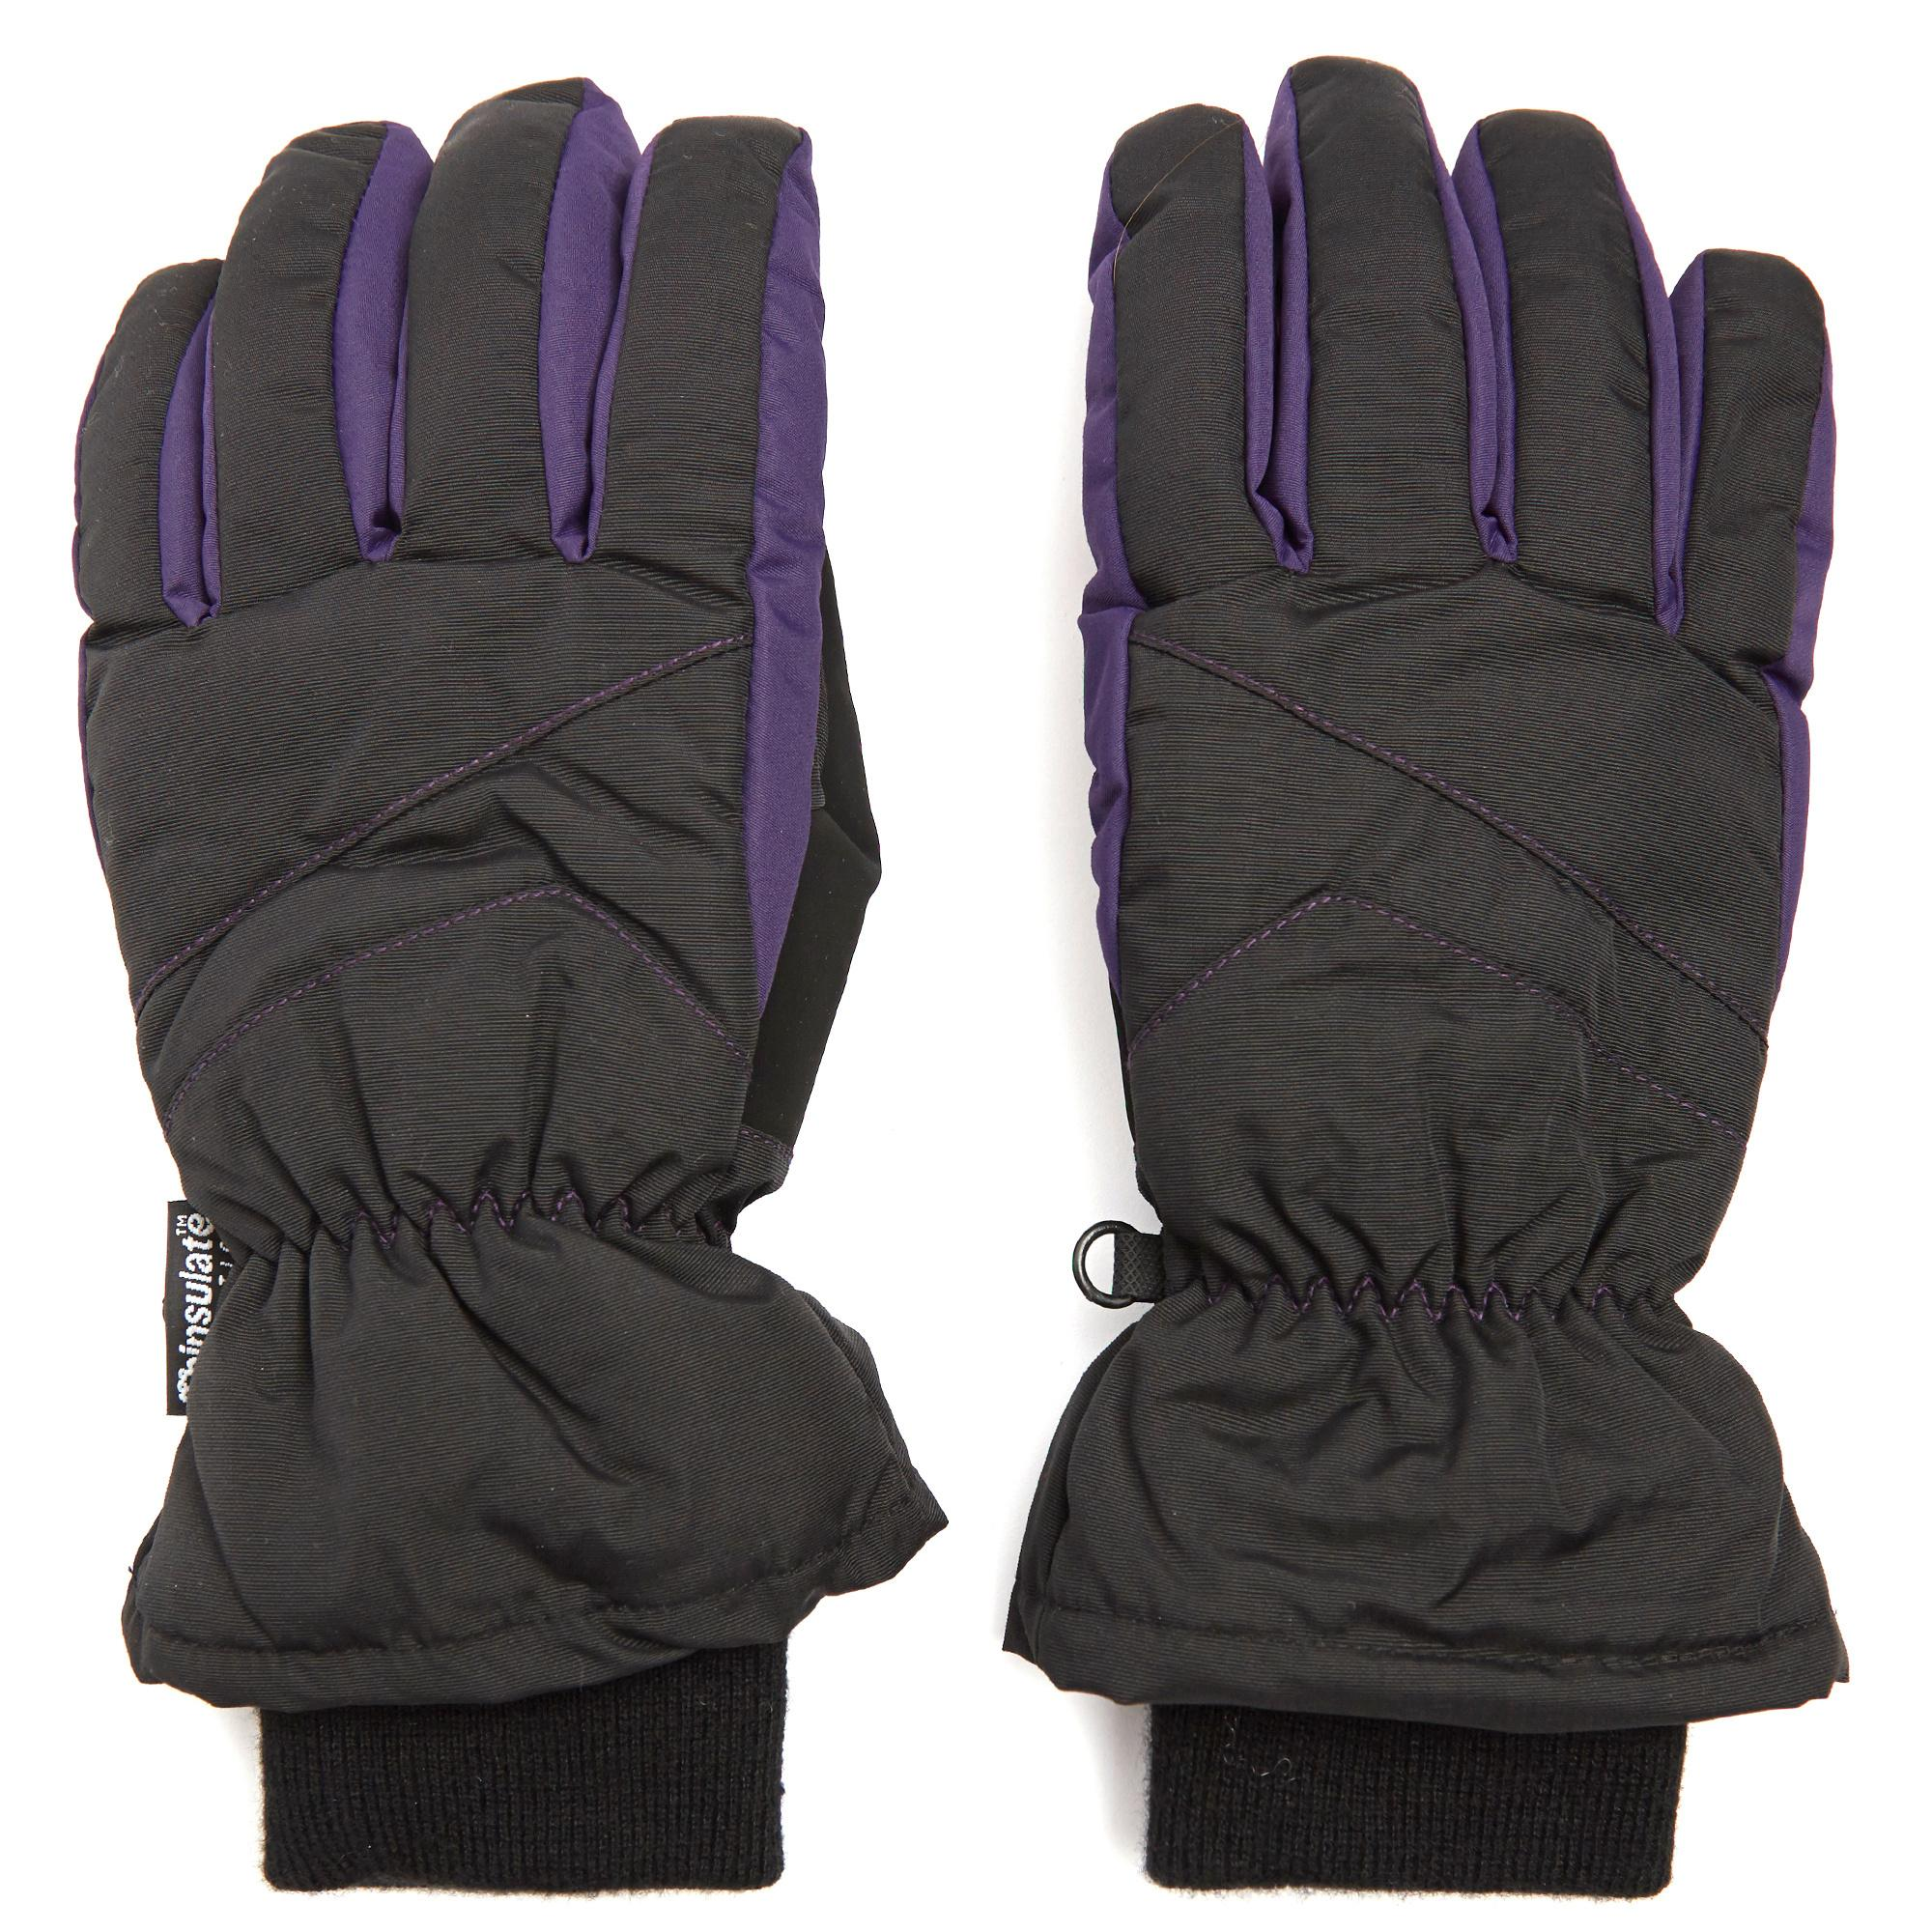 Peter Storm Women's Ski Gloves, Black